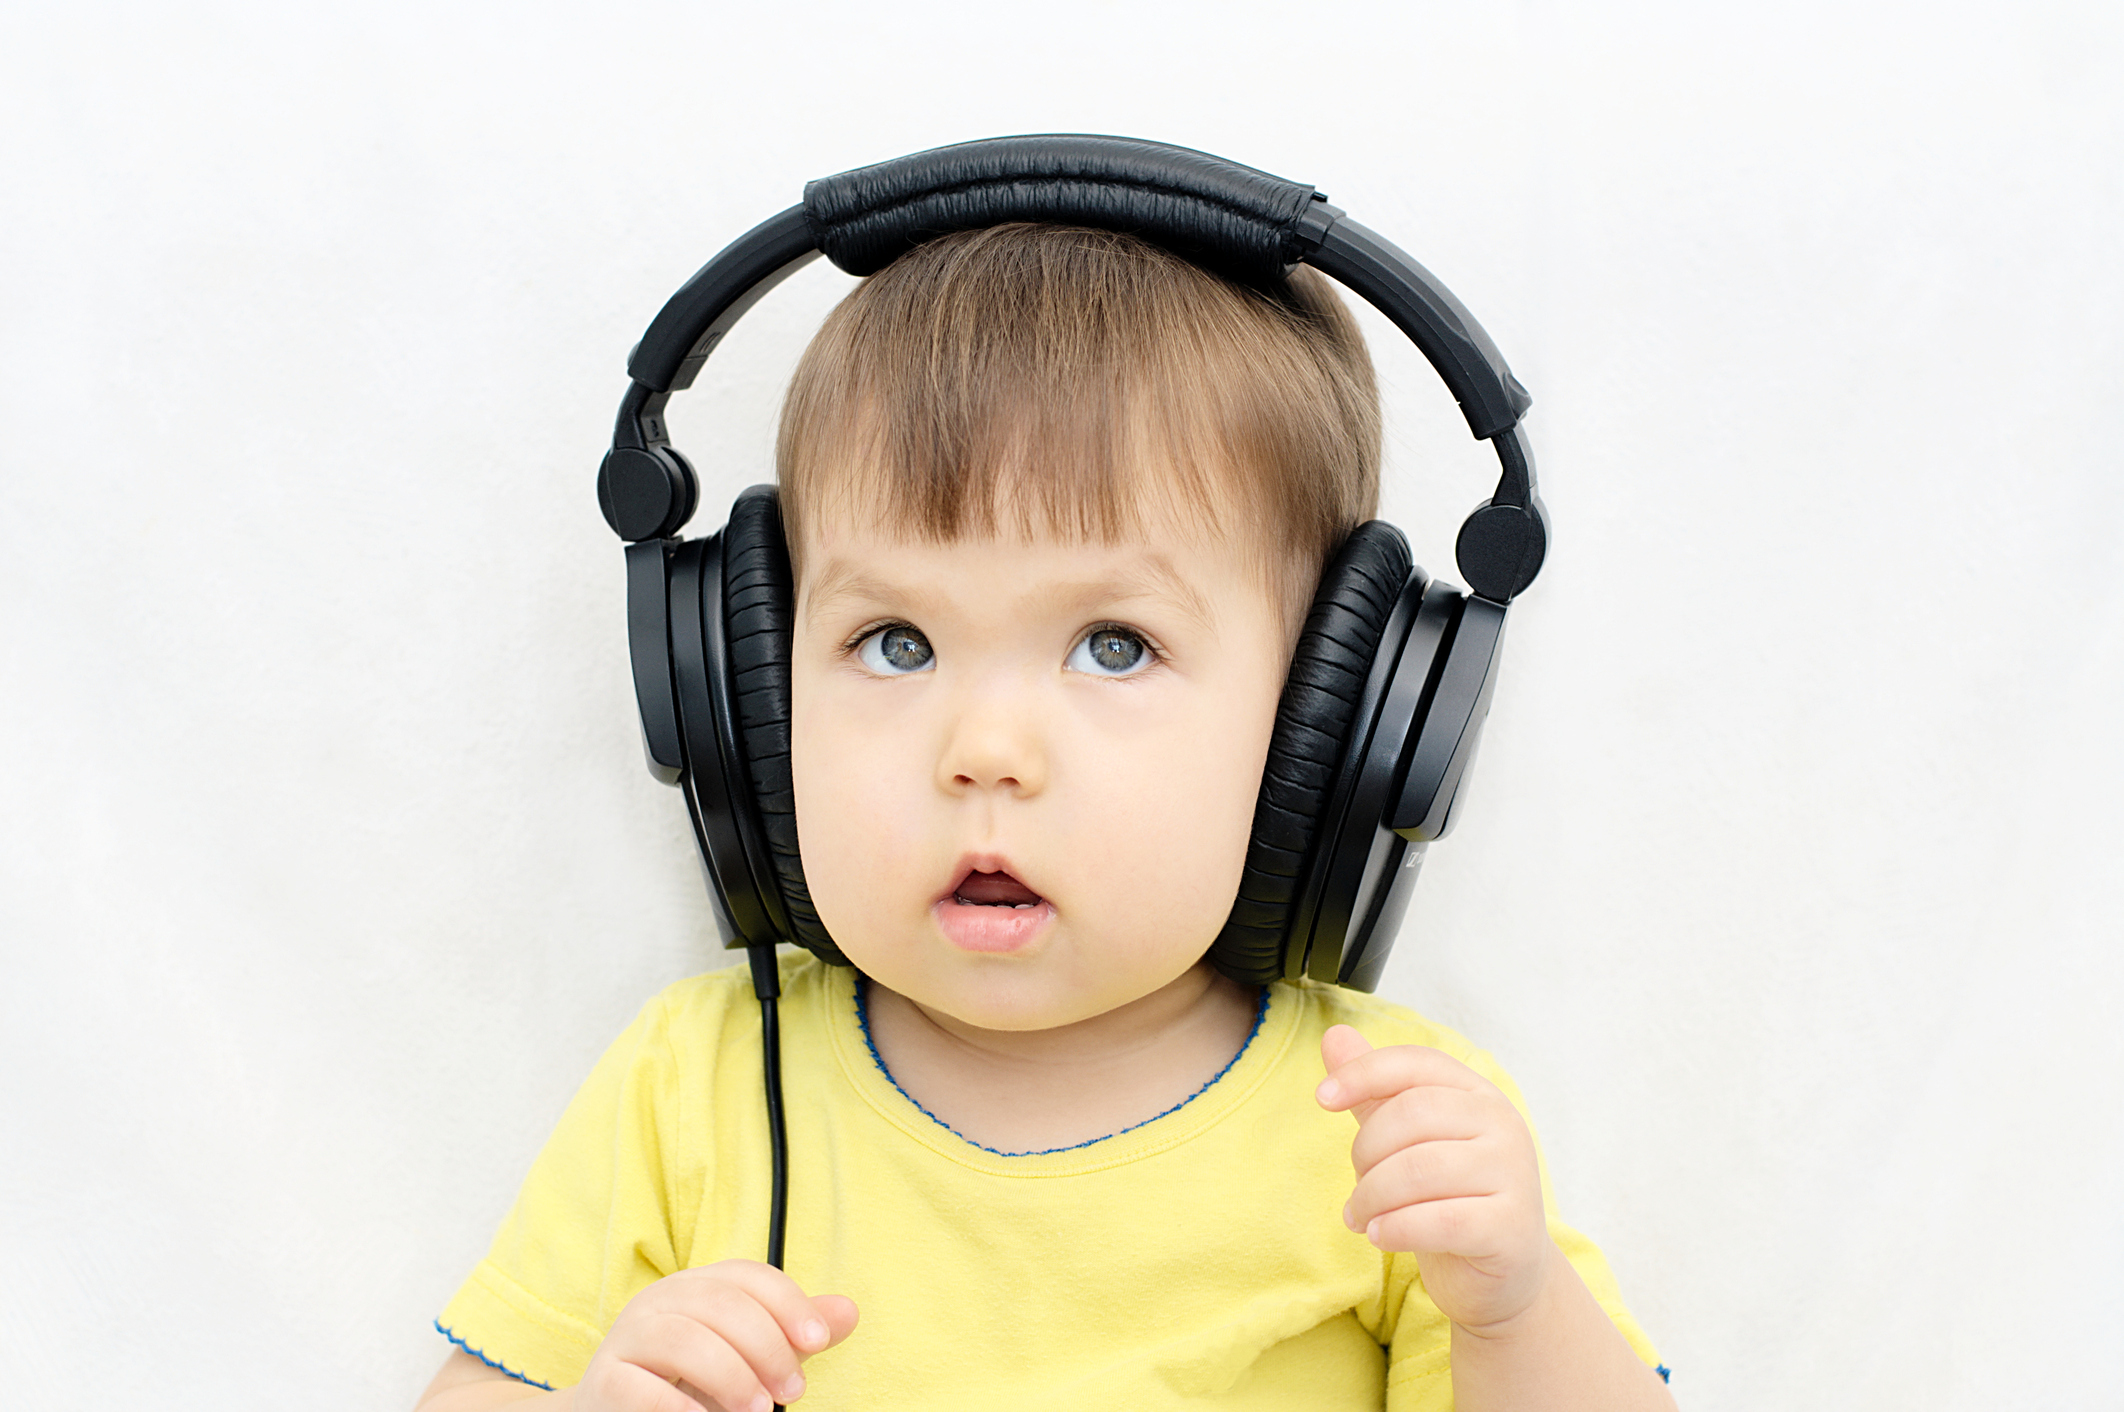 Image of a baby listening to earphones.